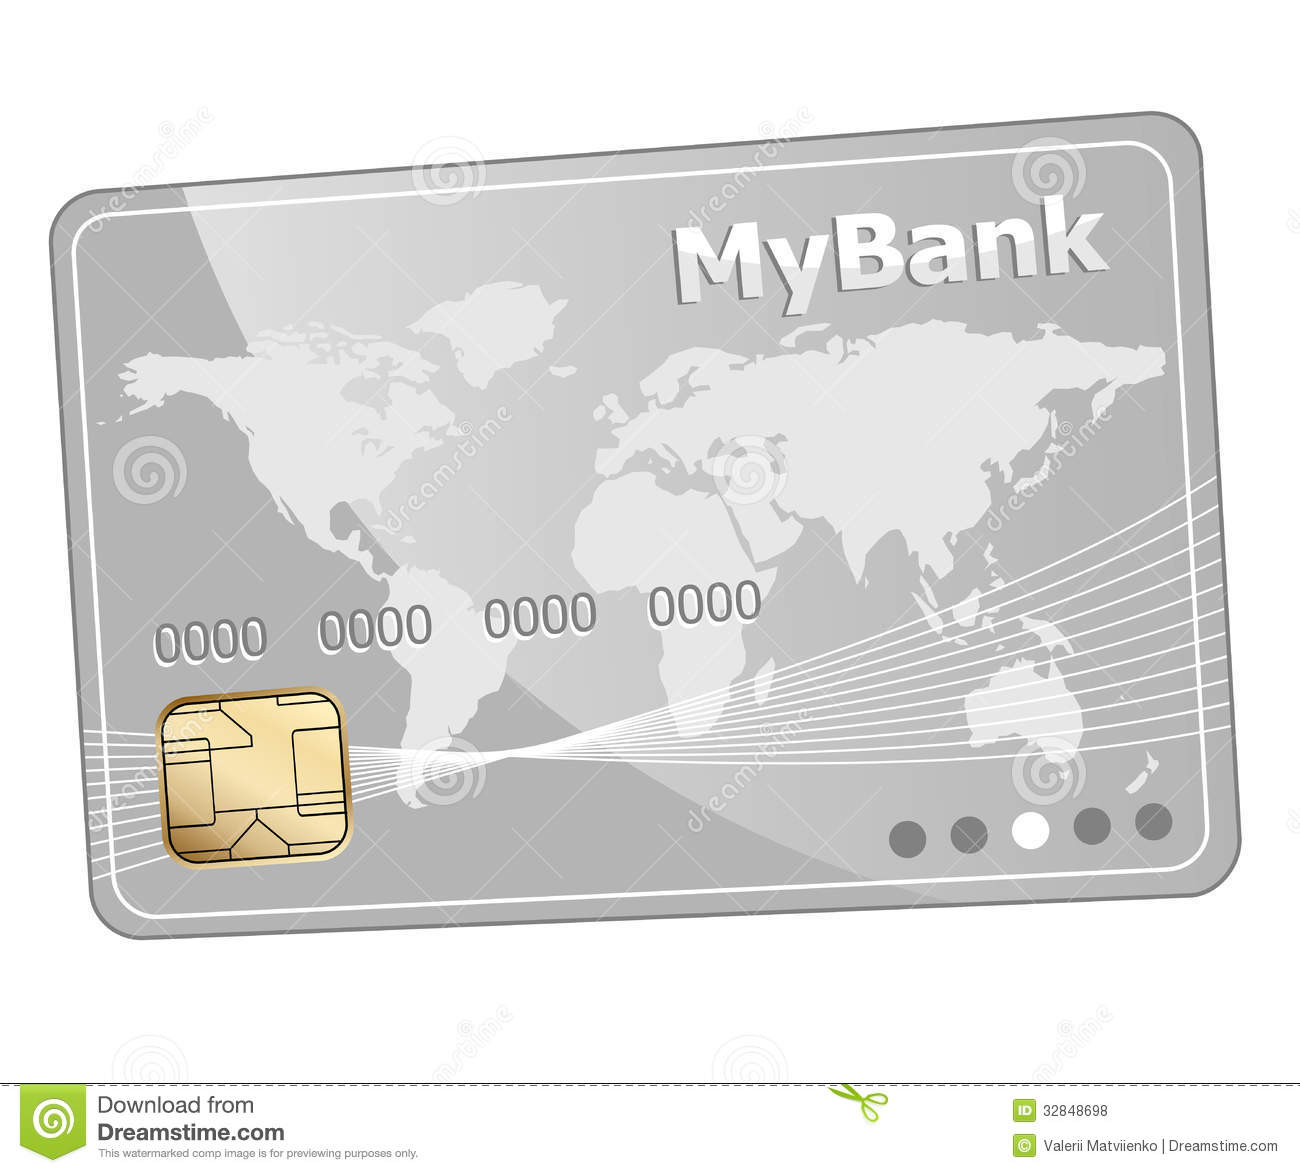 Plastikbank Credit Plastic Bank Card Icon Royalty Free Stock Photos